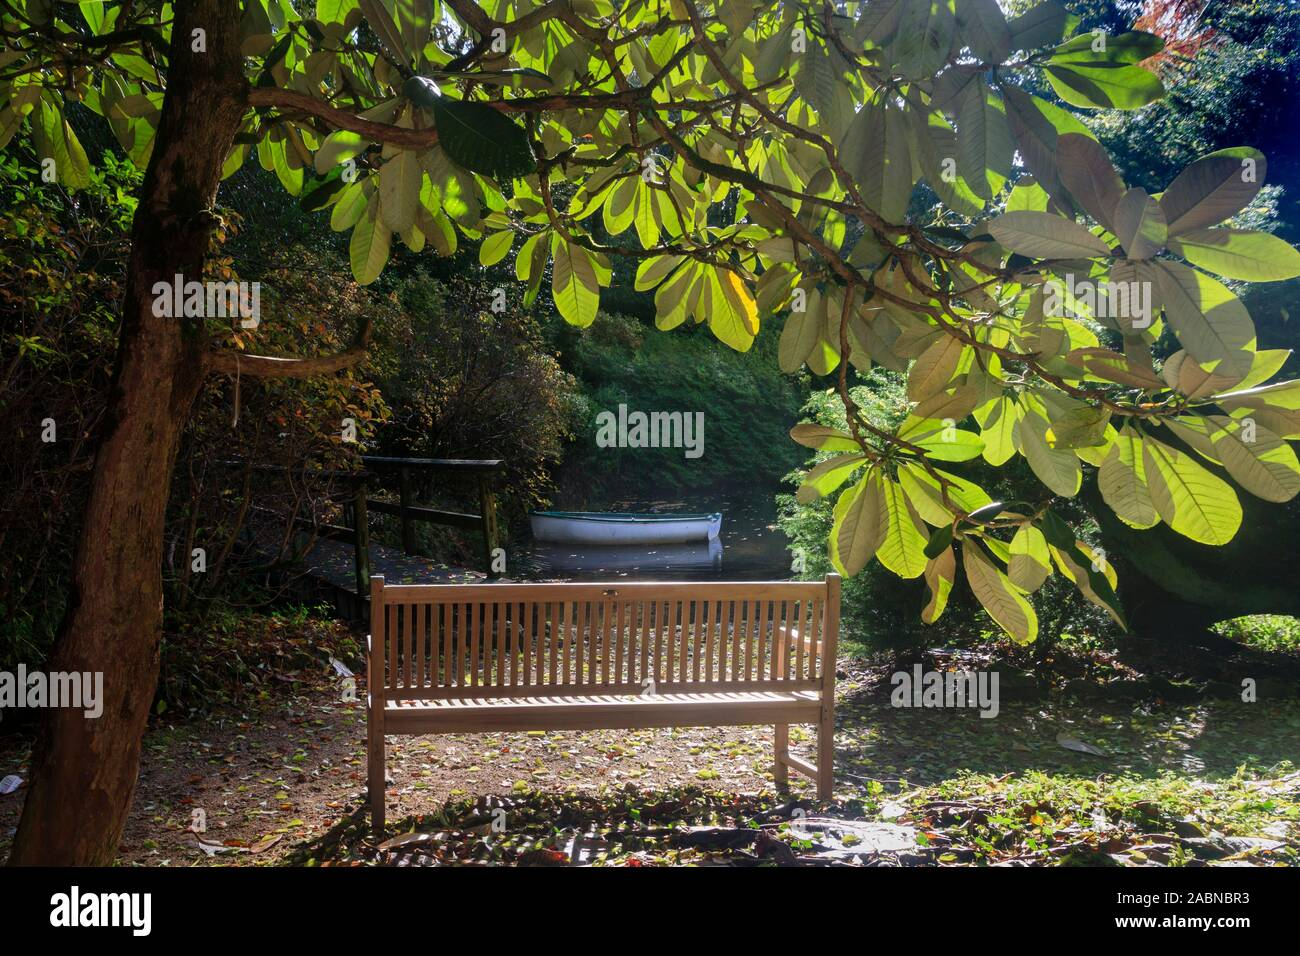 Heavy Duty Counter Stools, Shaded Bench High Resolution Stock Photography And Images Alamy